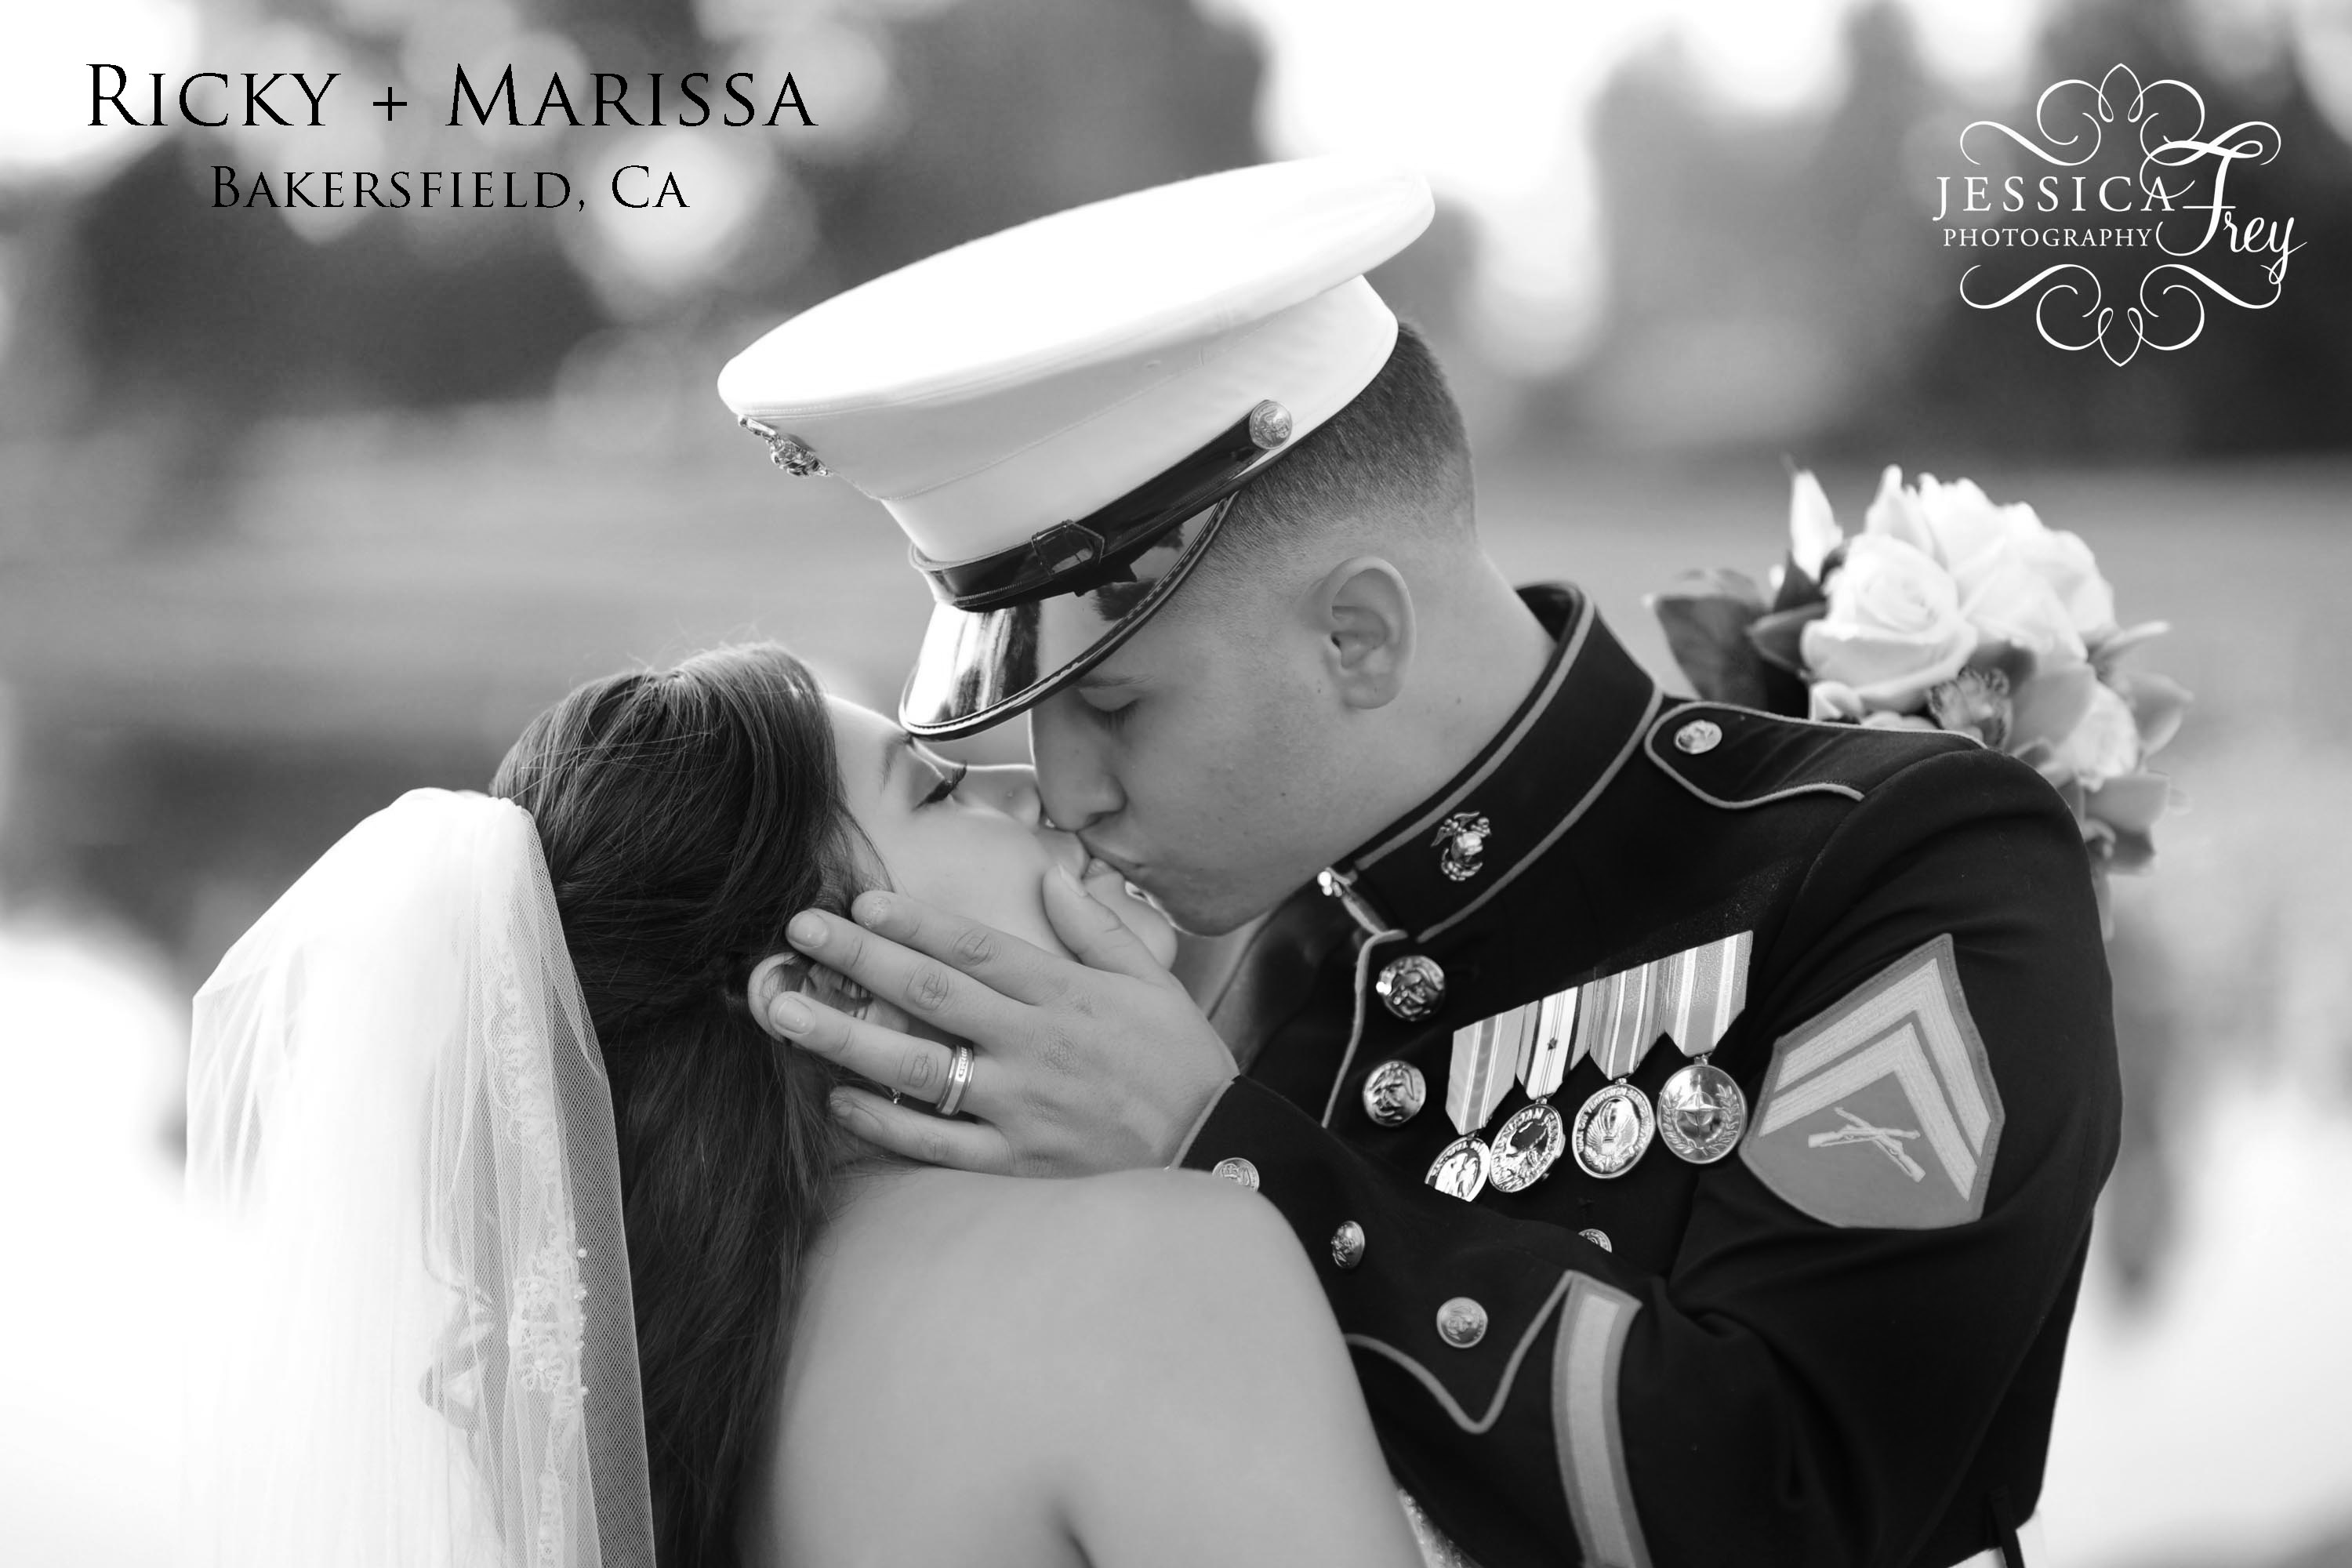 wedding picture poses must haves usmc wedding band 98 best images about Wedding picture poses Must haves on Pinterest Dress blues Wedding and Detroit michigan